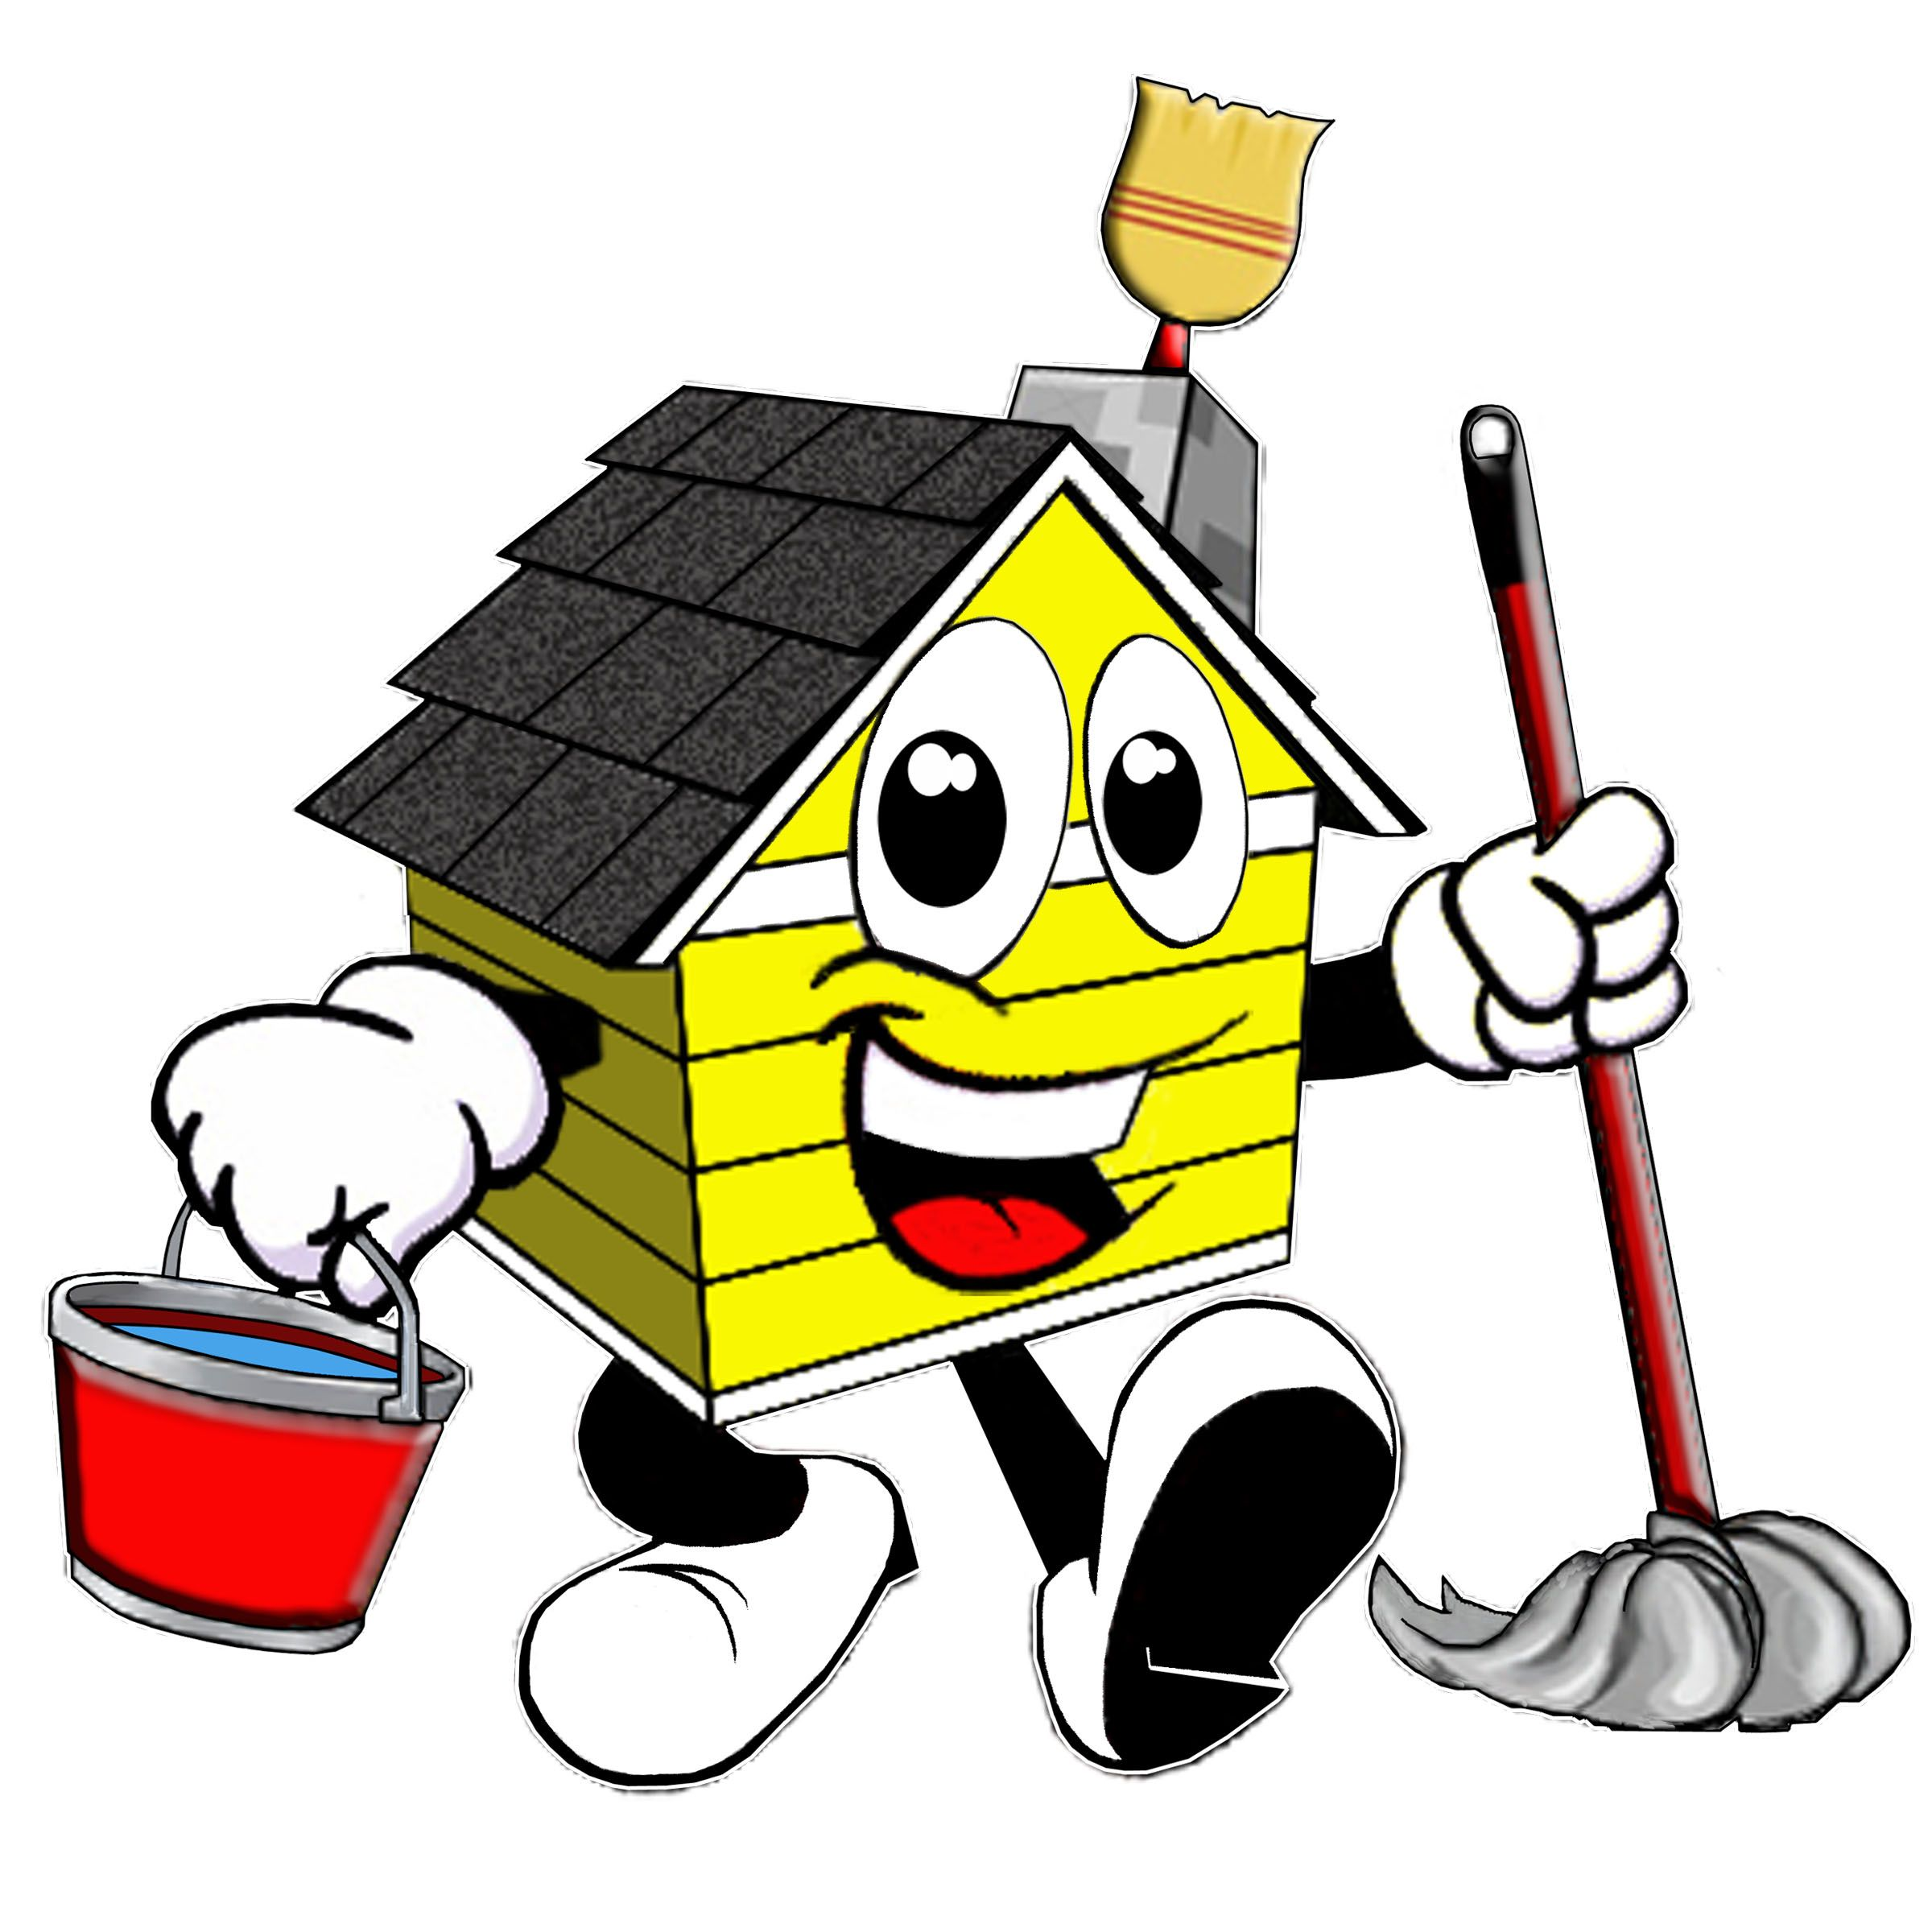 Service clipart household service. House cleaning professional cartoon